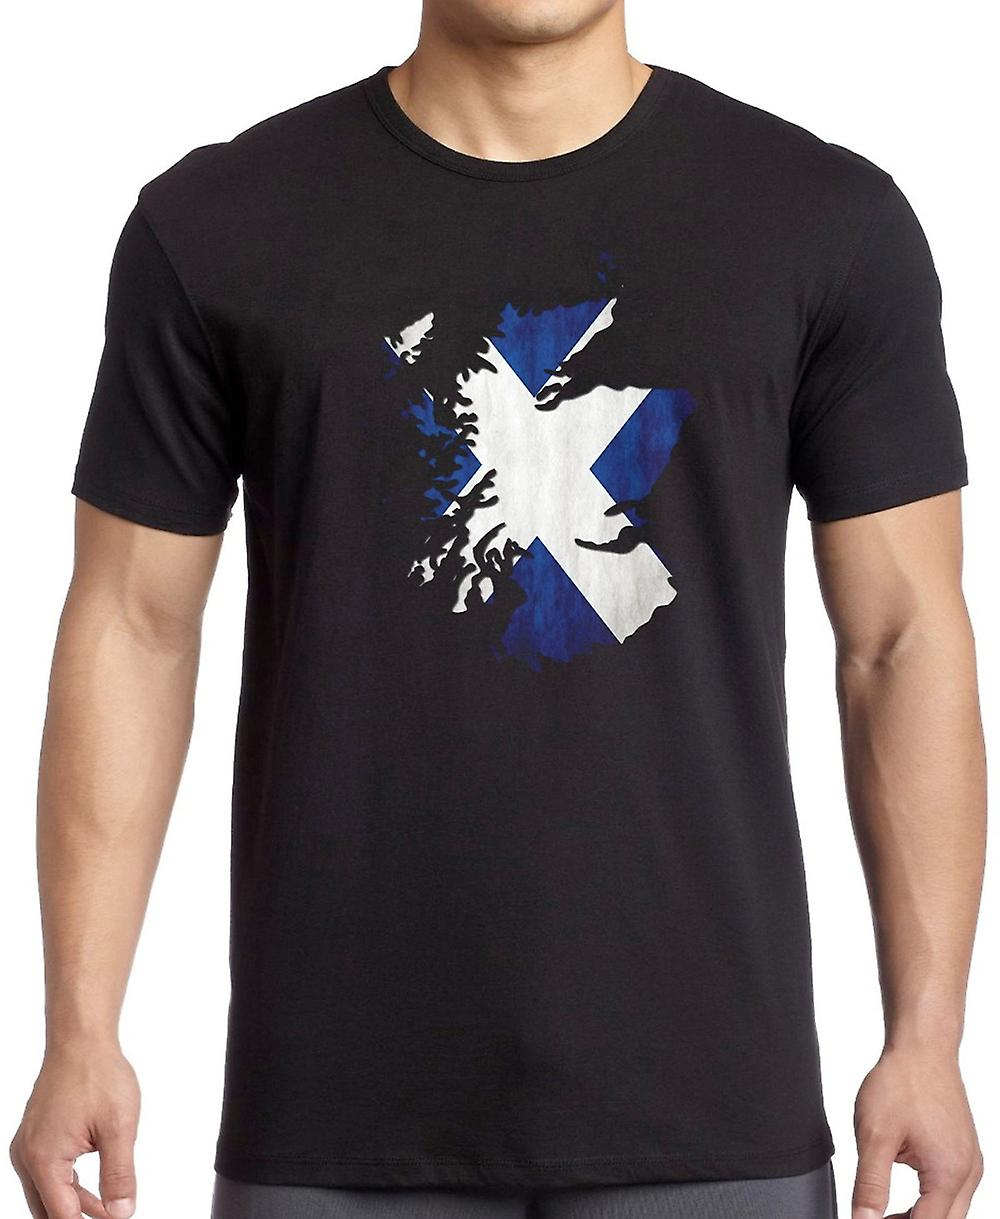 Ecosse Scottish Saltire Map Design T-shirt